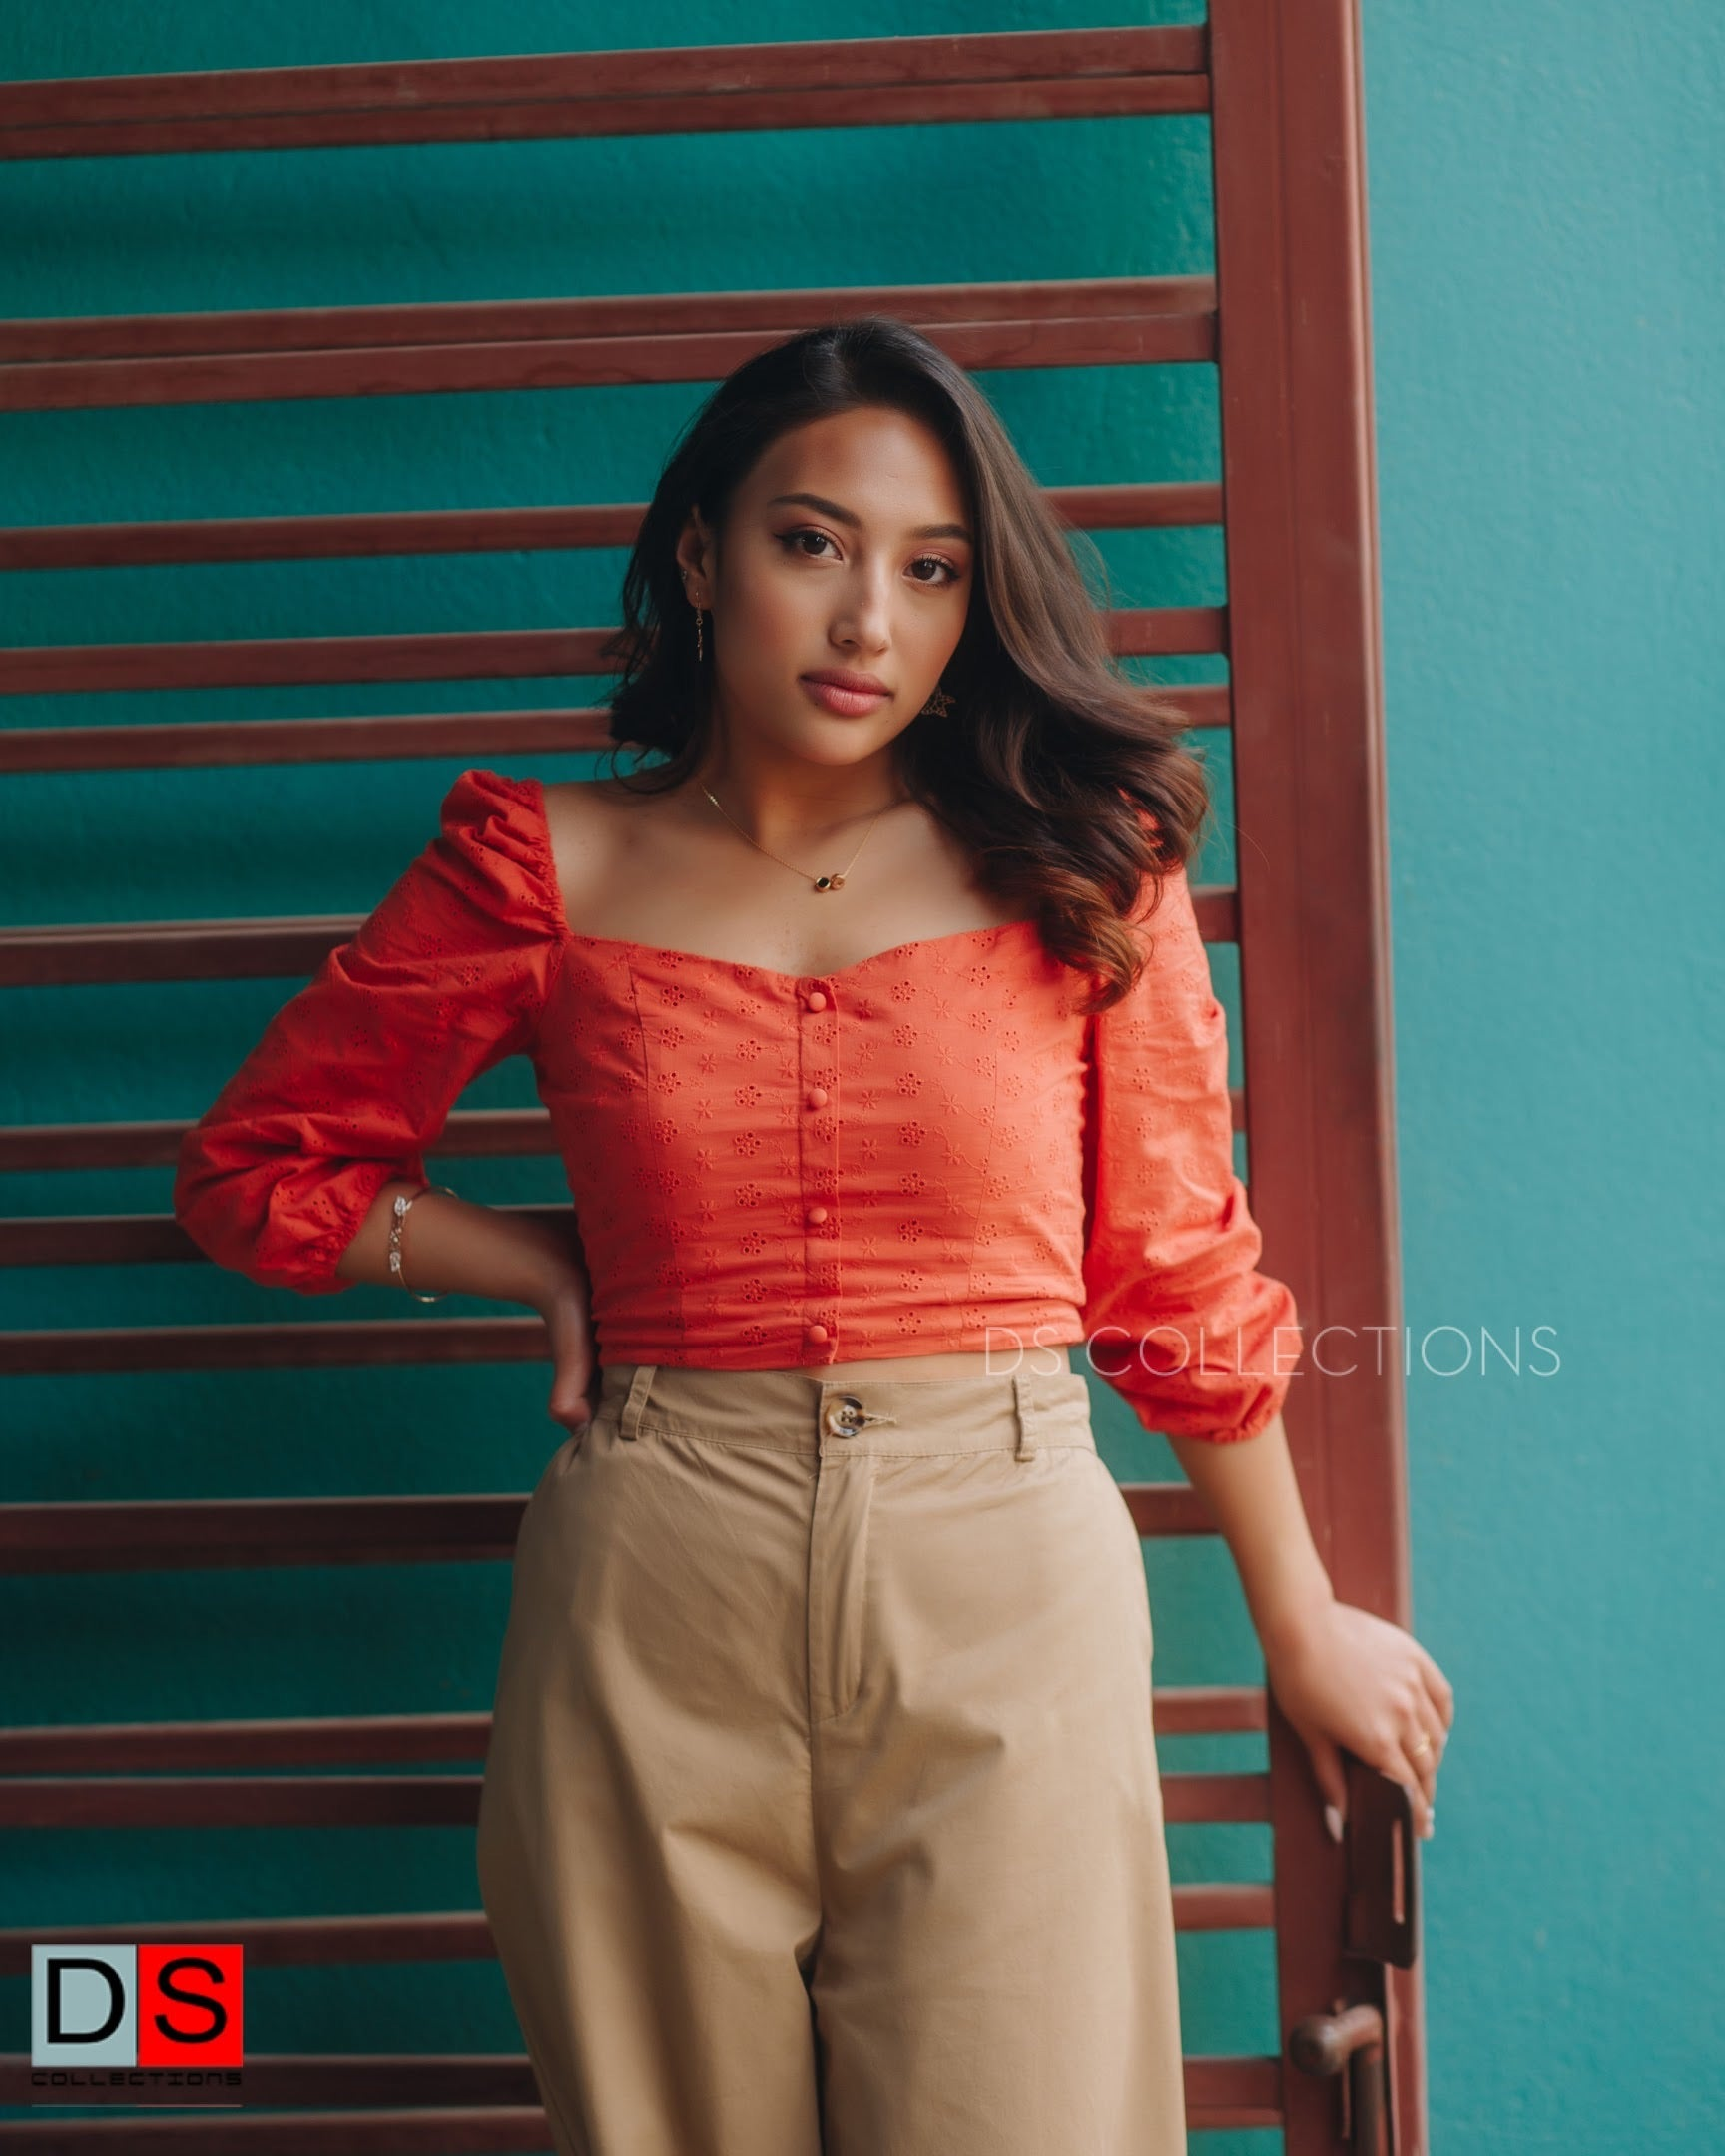 Eyelet Puffy Sleeve With Corset Button Down Crop Top